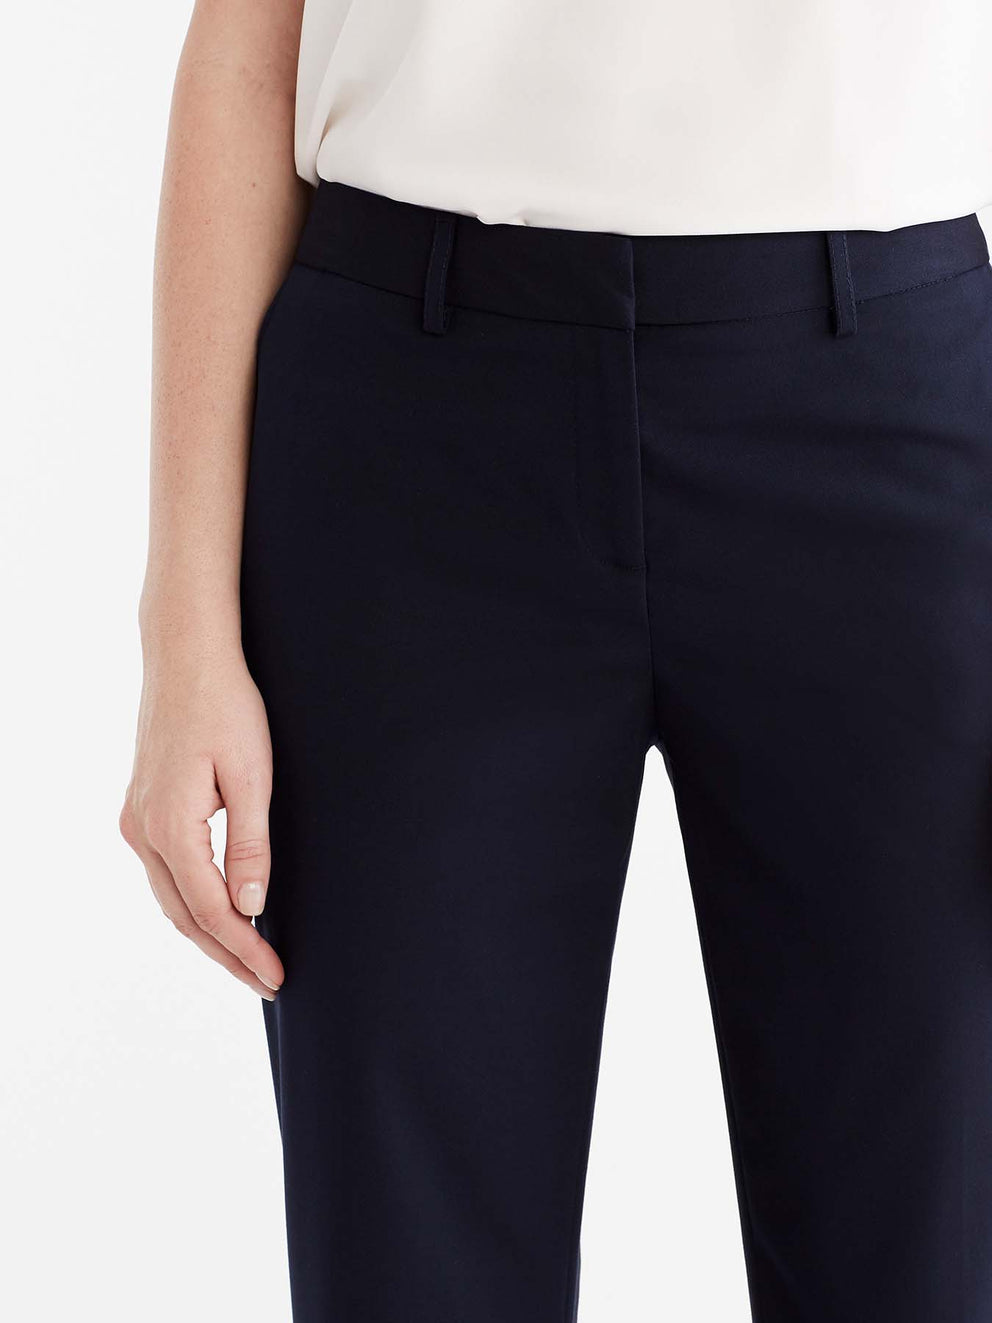 The Jones New York Washable Sydney Pant in color Navy - Image Position 3